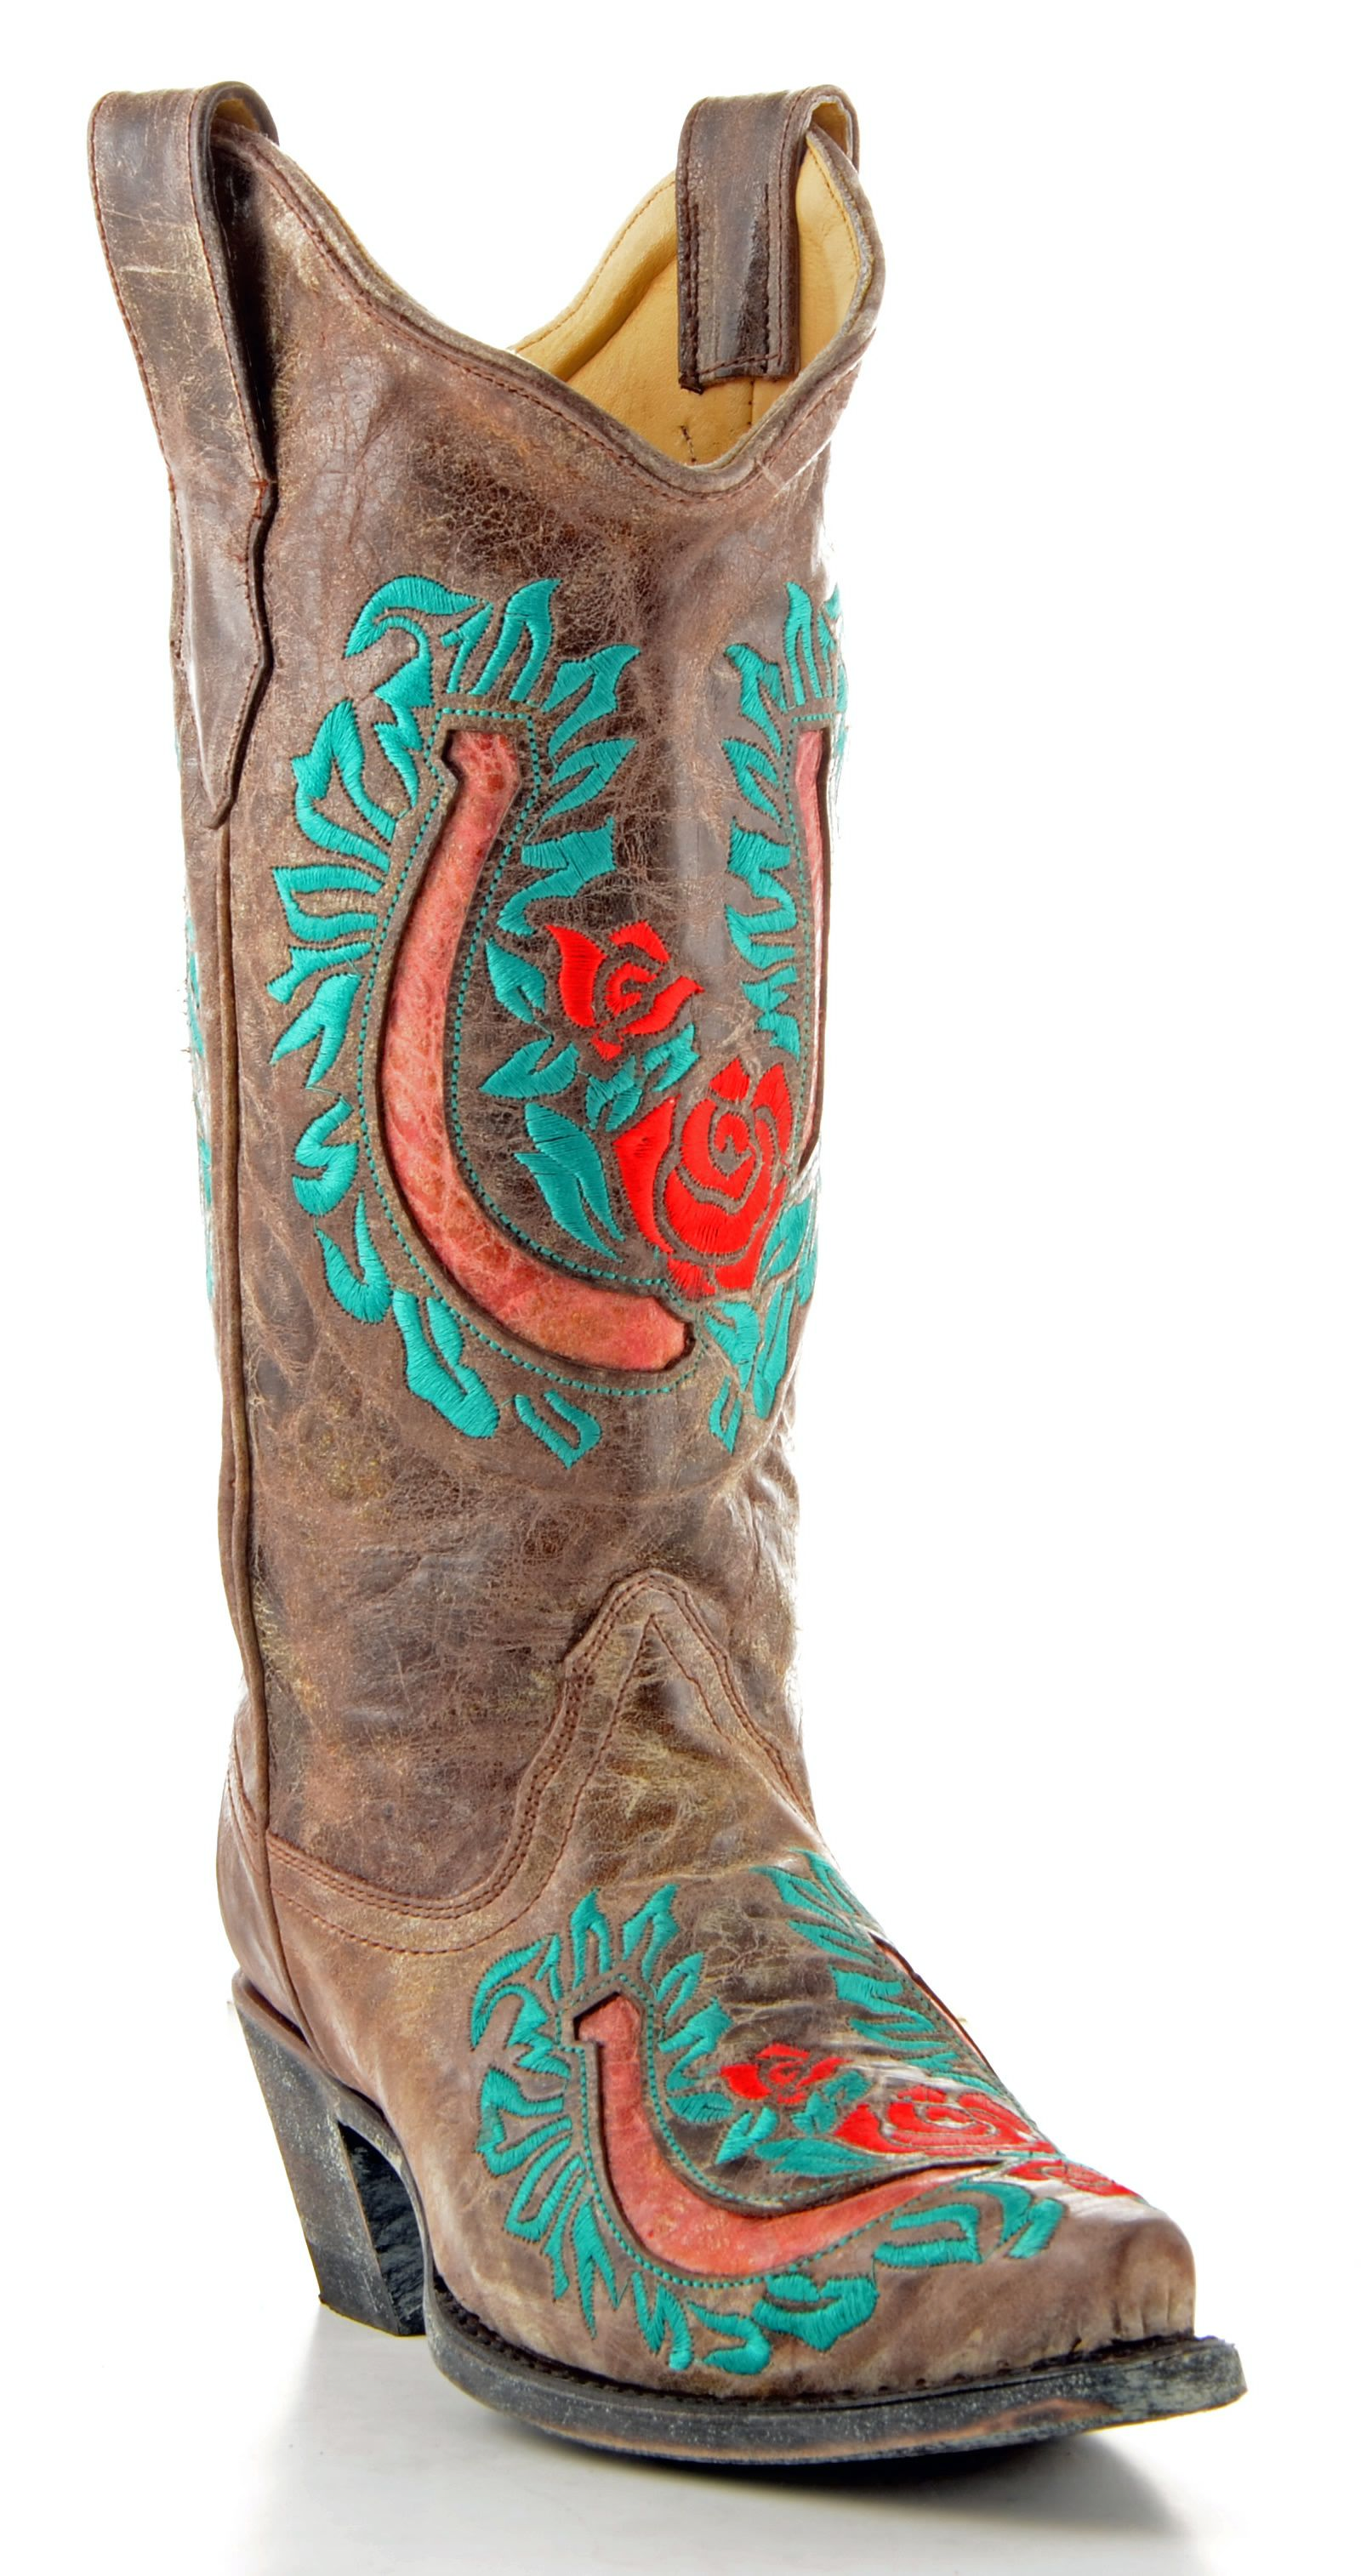 Corral Boots in Tabacco & Red